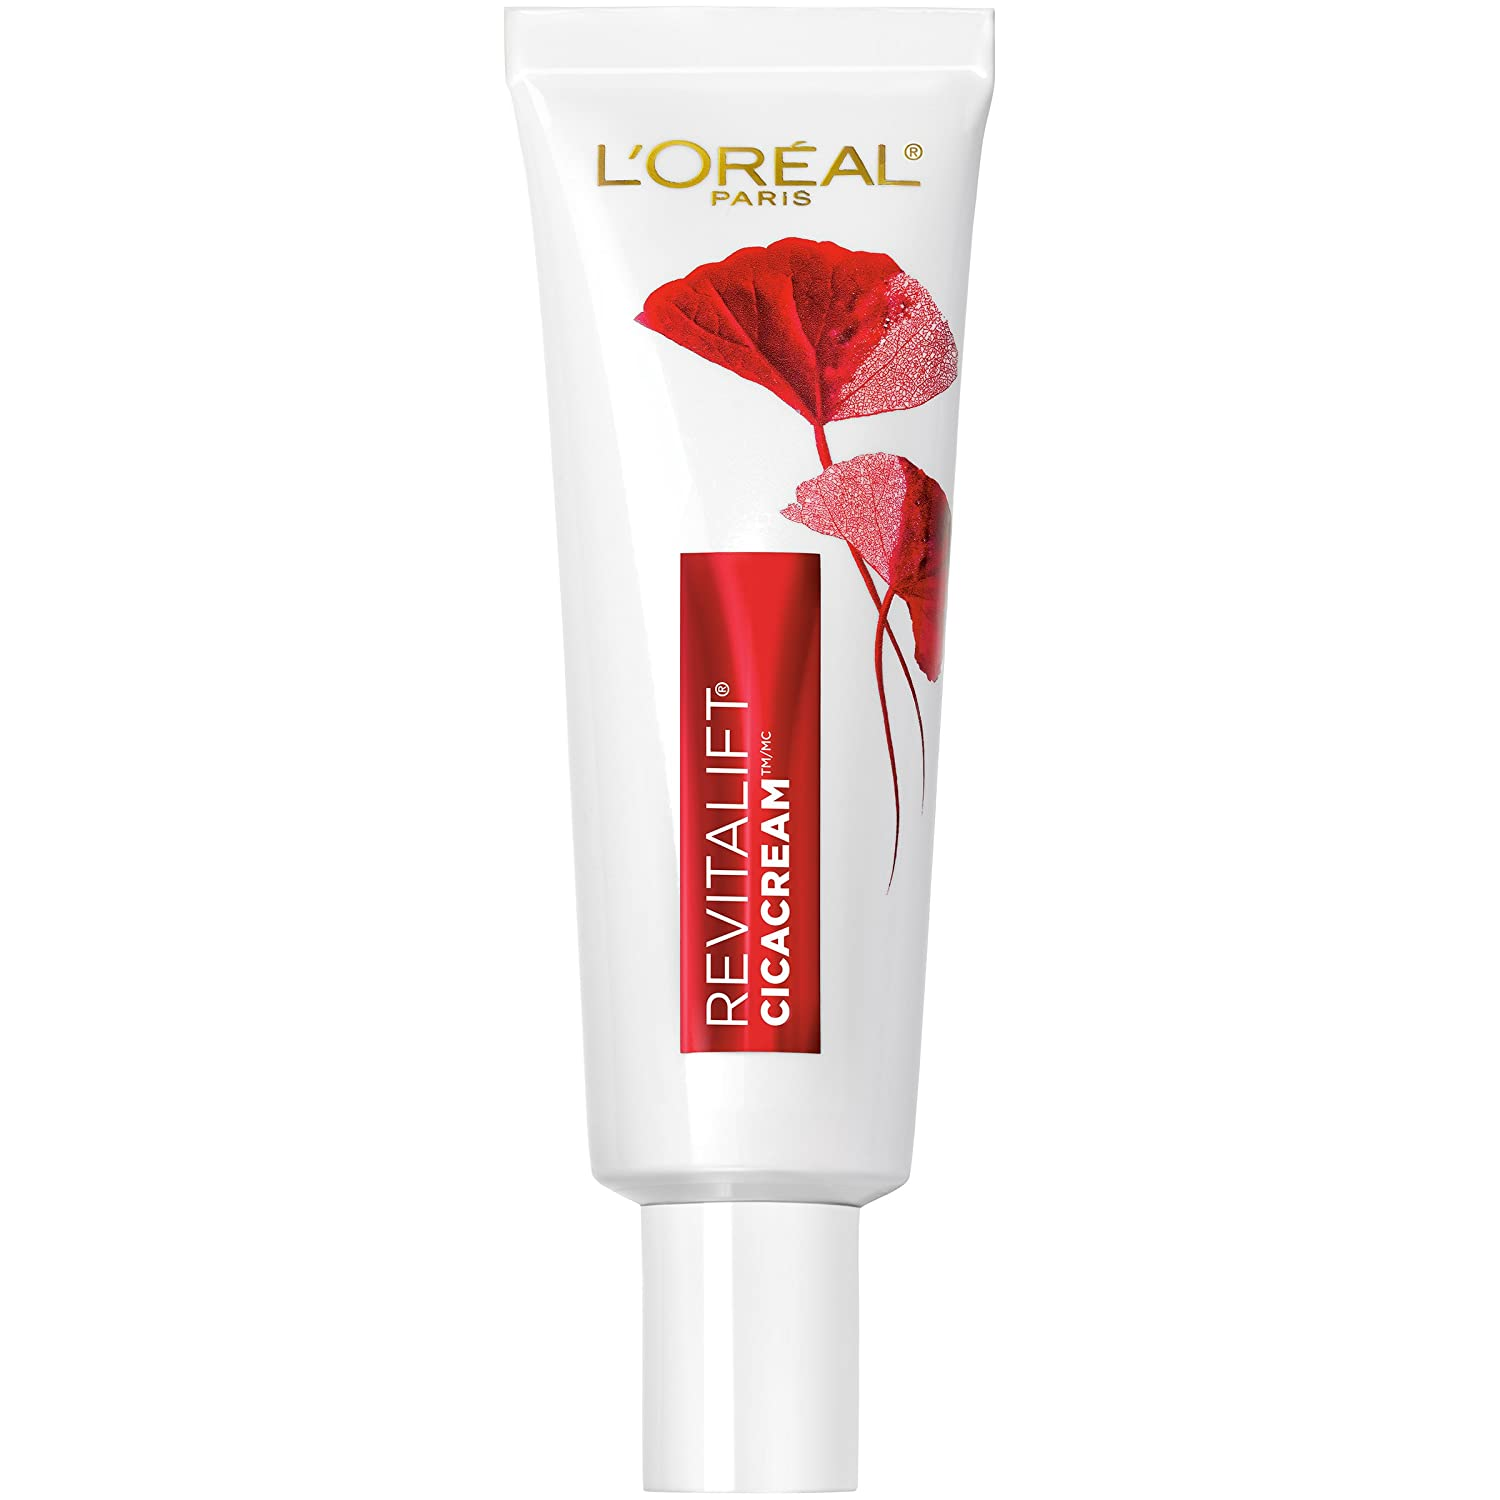 L'Oreal Paris Revitalift Cicacream Anti-Aging Face Moisturizer with Centella Asiatica for Anti-Wrinkle and Skin Barrier Repair